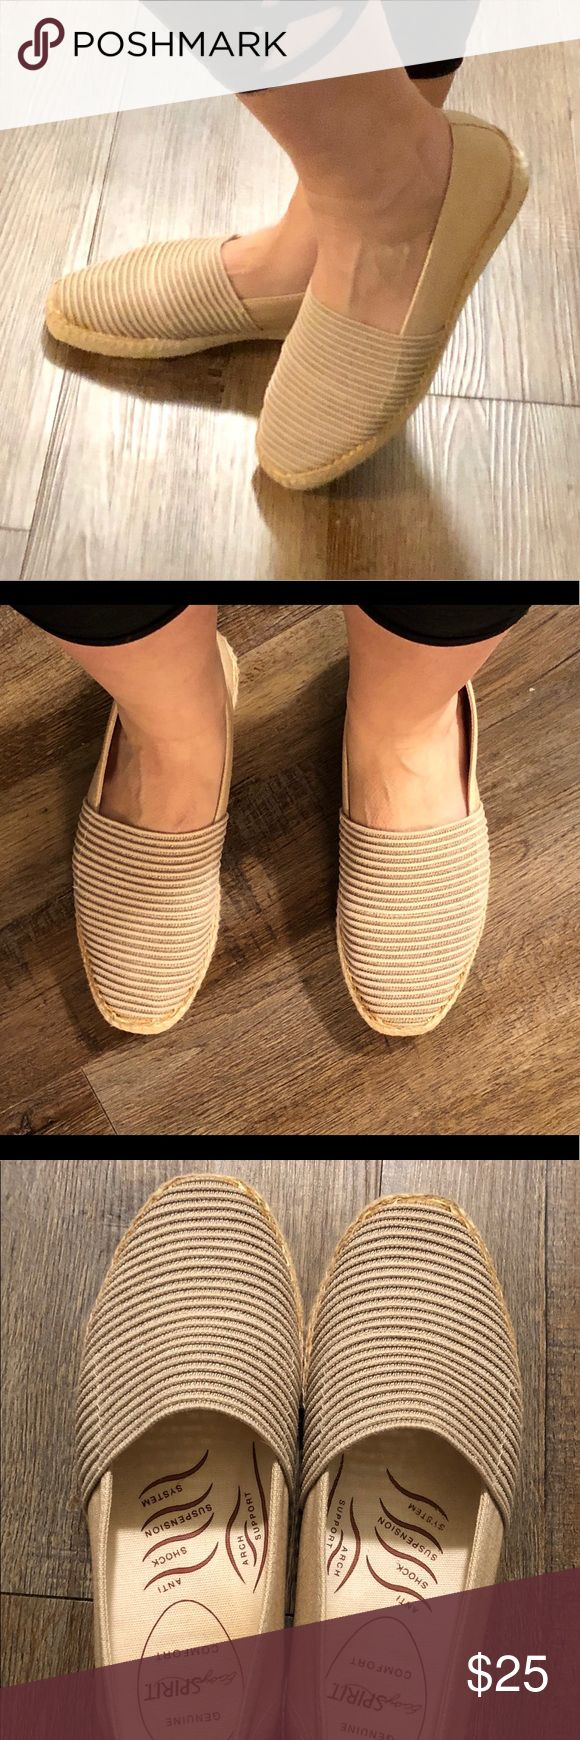 Easy Spirit comfort slip ons Perfect flawless condition 😍 they have memory foam like technology in them!! So so cute for spring summer heck even fall. They have a canvas look to them. Easy Spirit Shoes Flats & Loafers